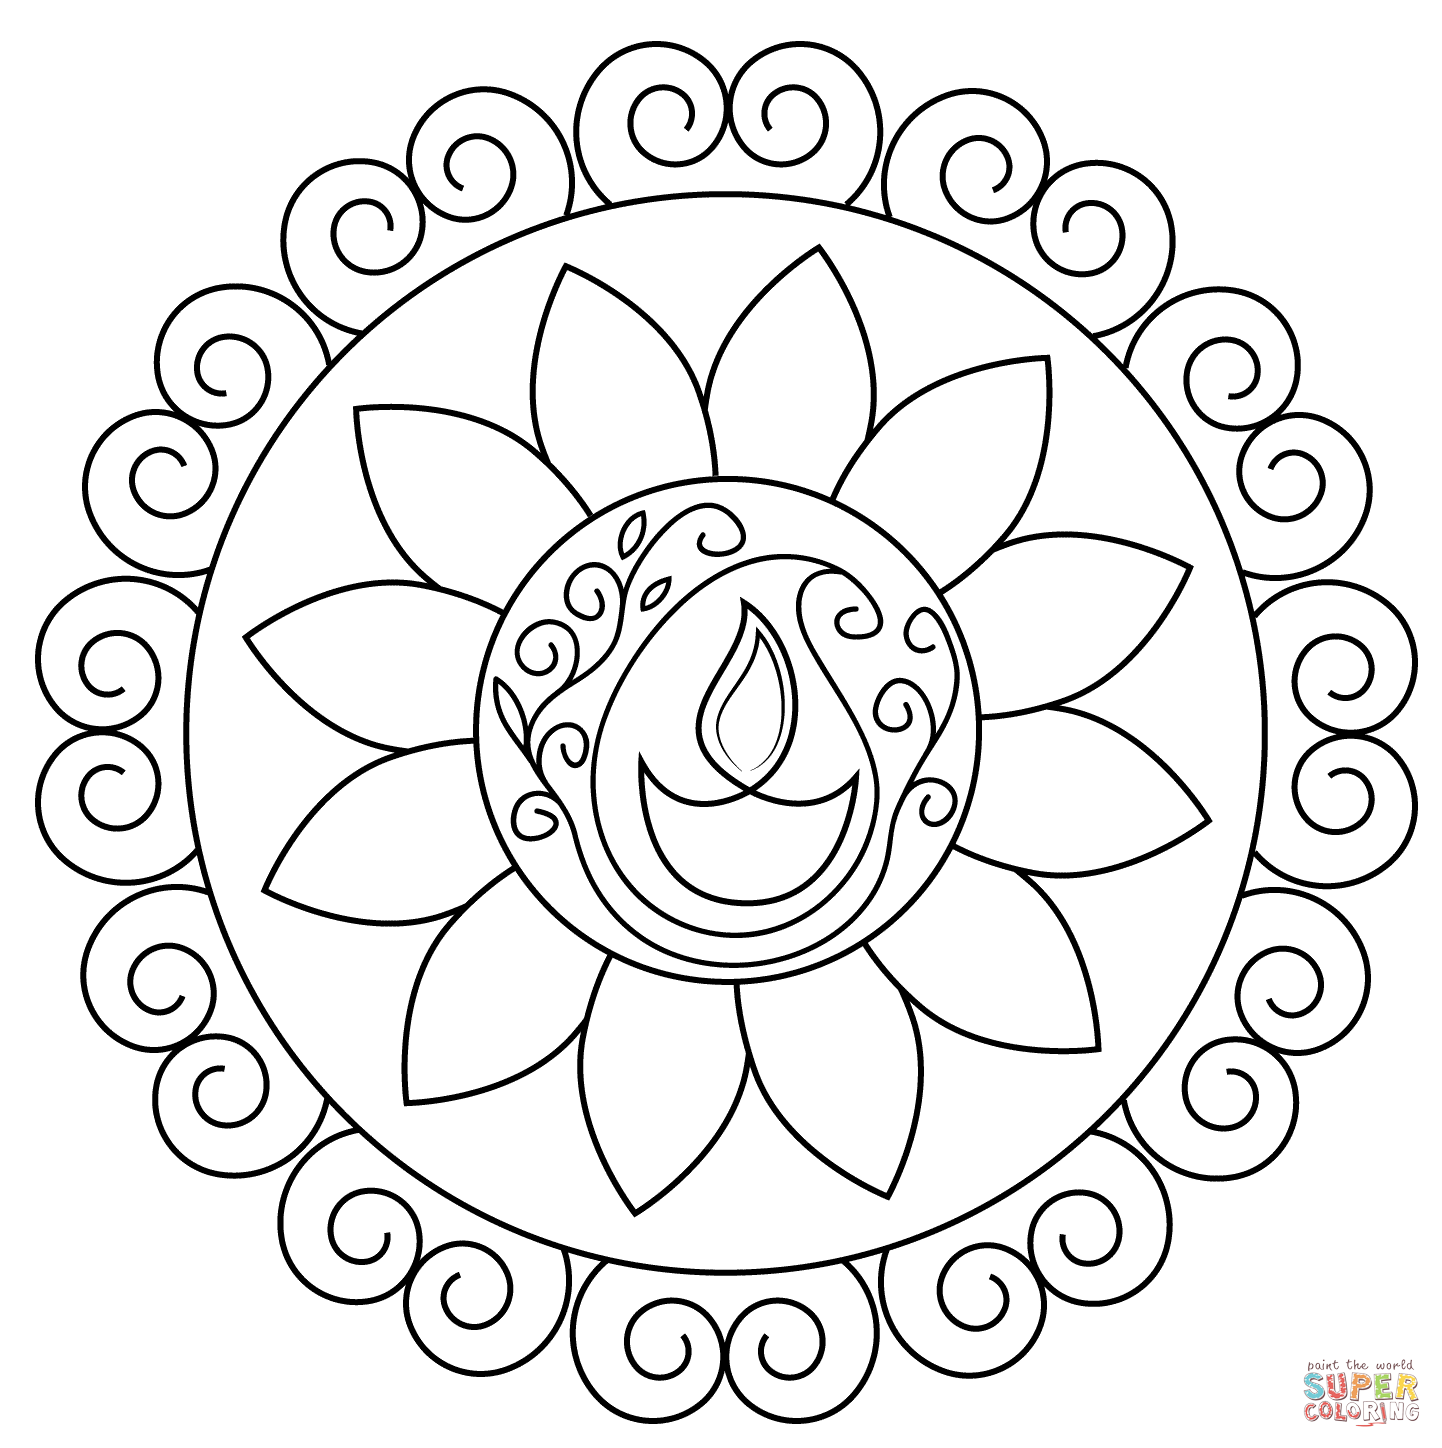 pictures of diwali for colouring cartoon of diwali festival coloring page netart diwali colouring pictures for of